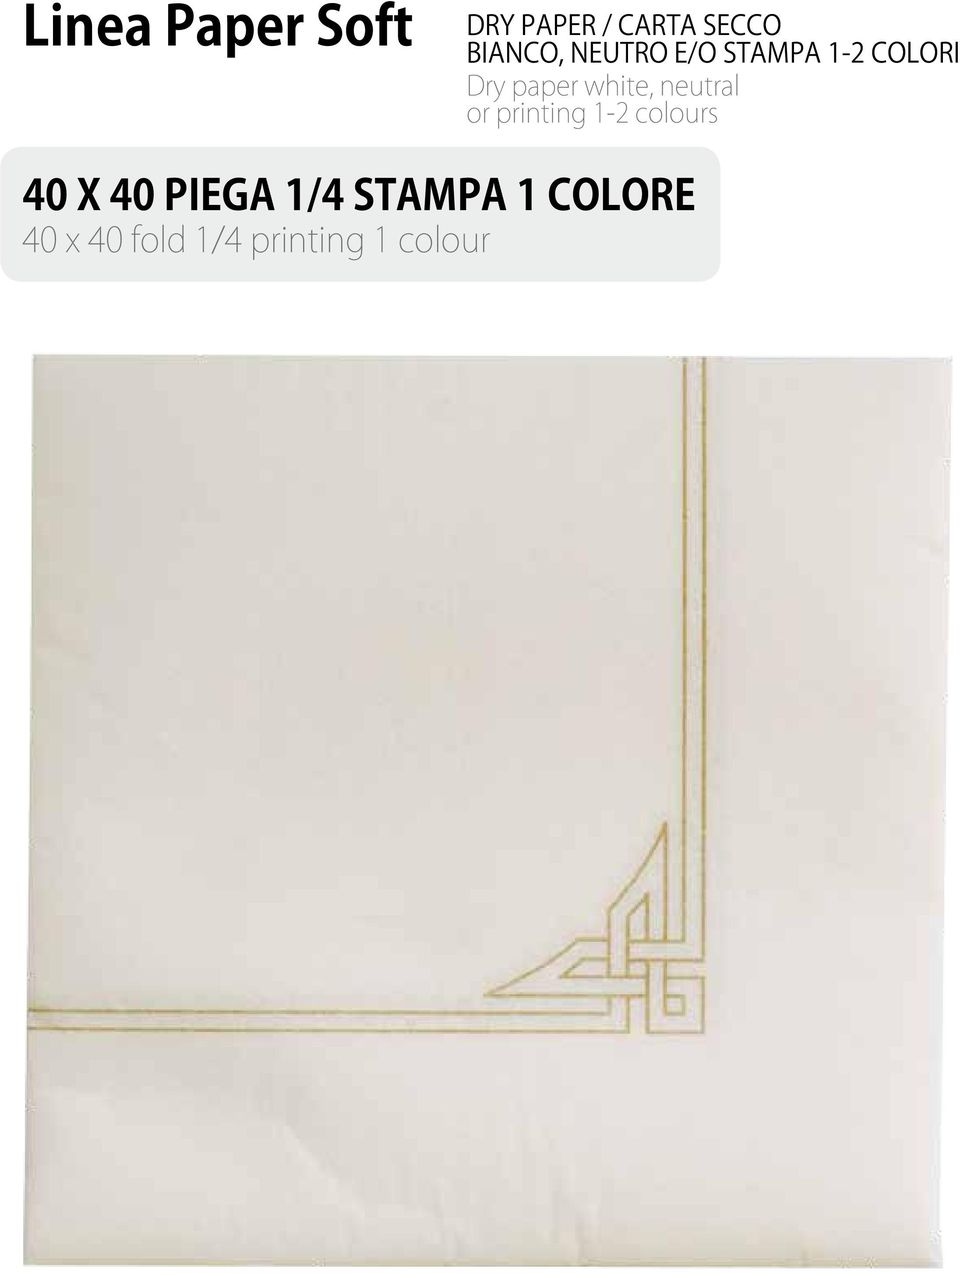 neutral or printing 1-2 colours 40 X 40 PIEGA